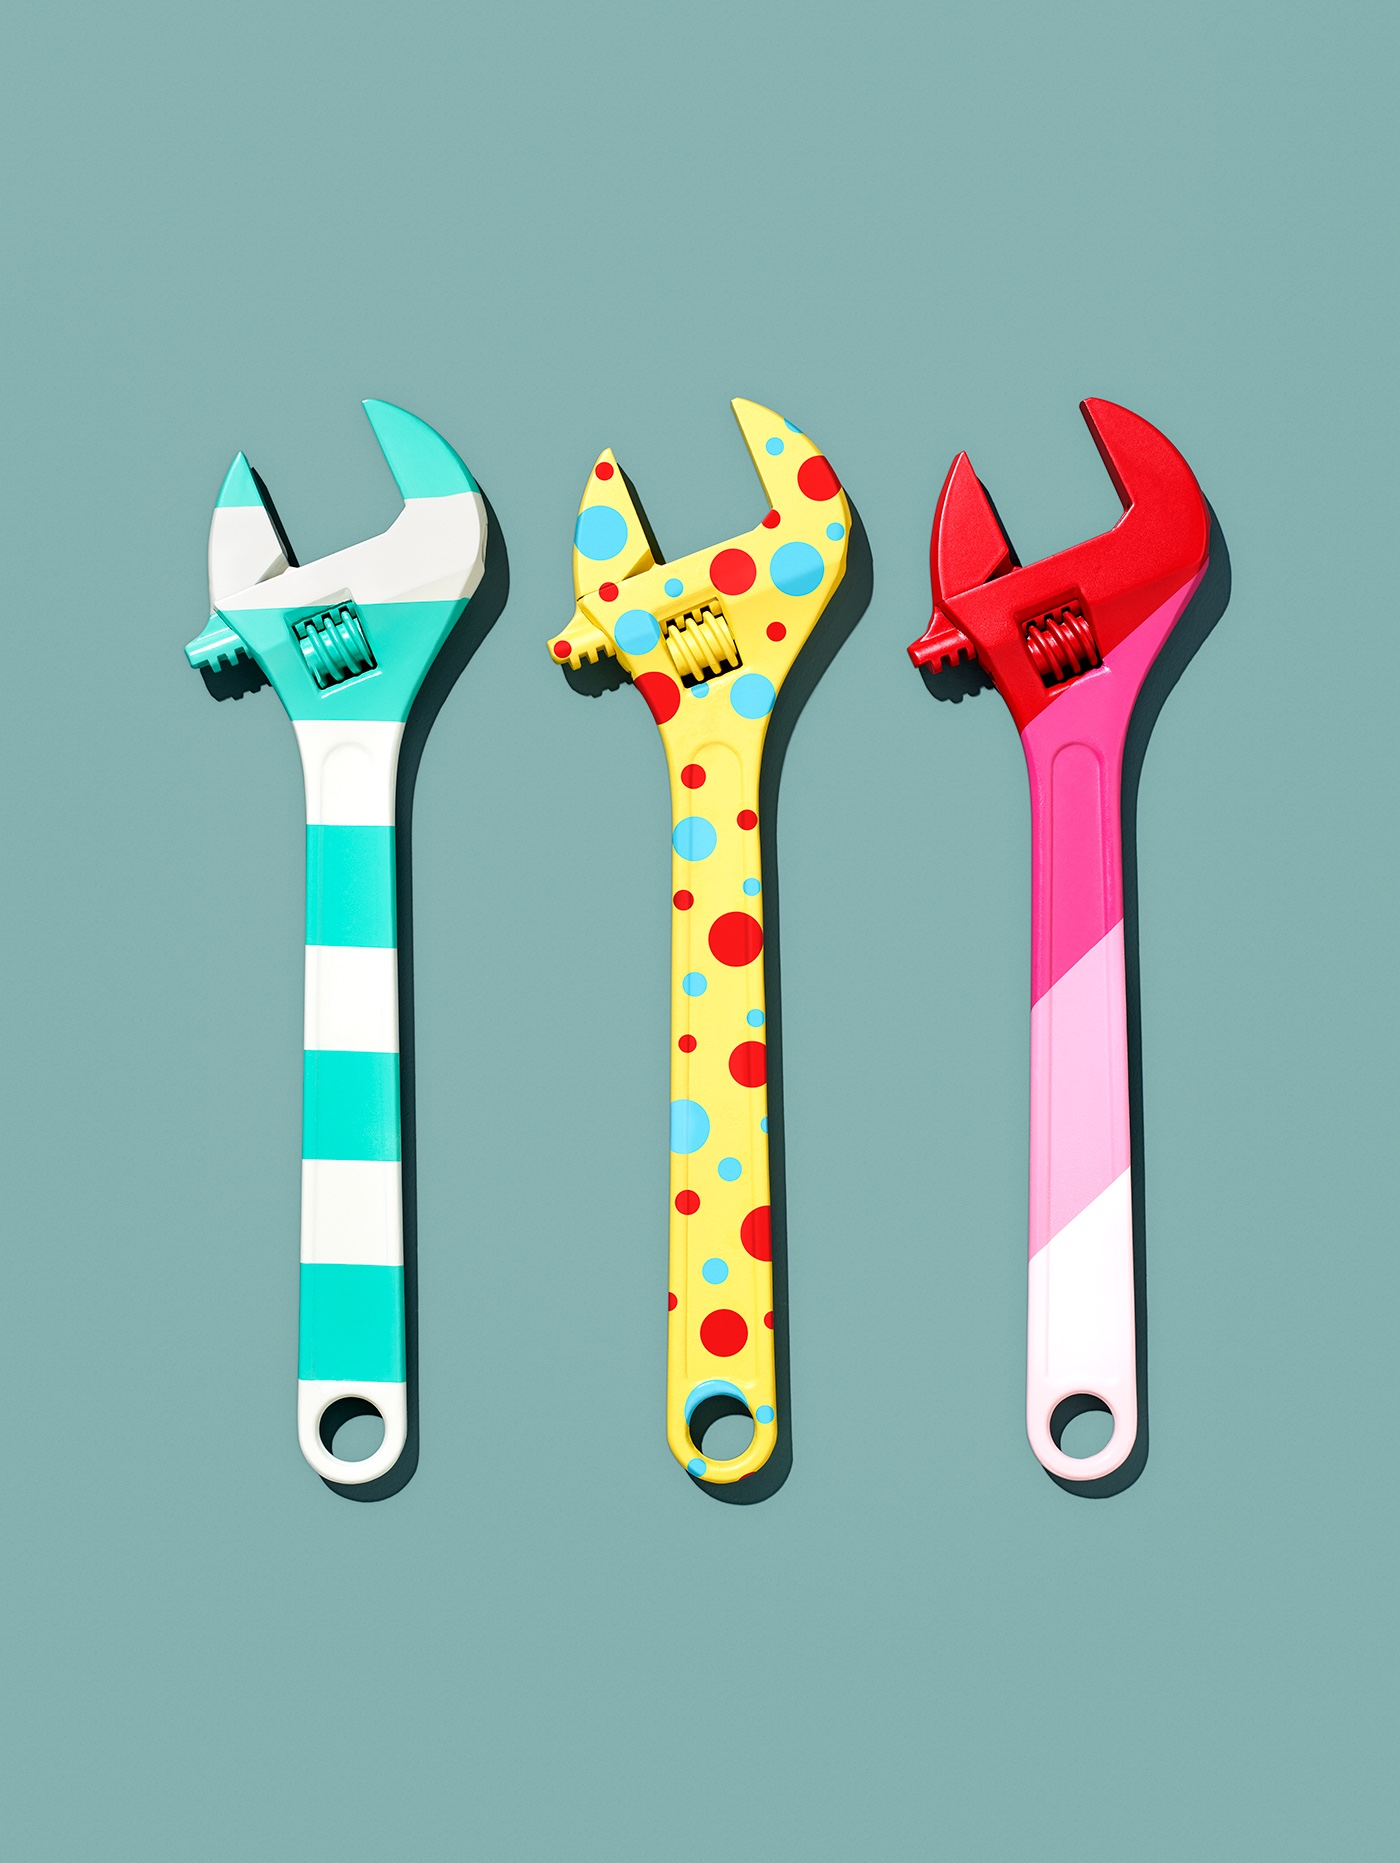 https://tickertapecdn.tdameritrade.com/assets/images/pages/md/Three identical adjustable wrenches all painted in different patterns, small stripes, polka dots, and multicolor